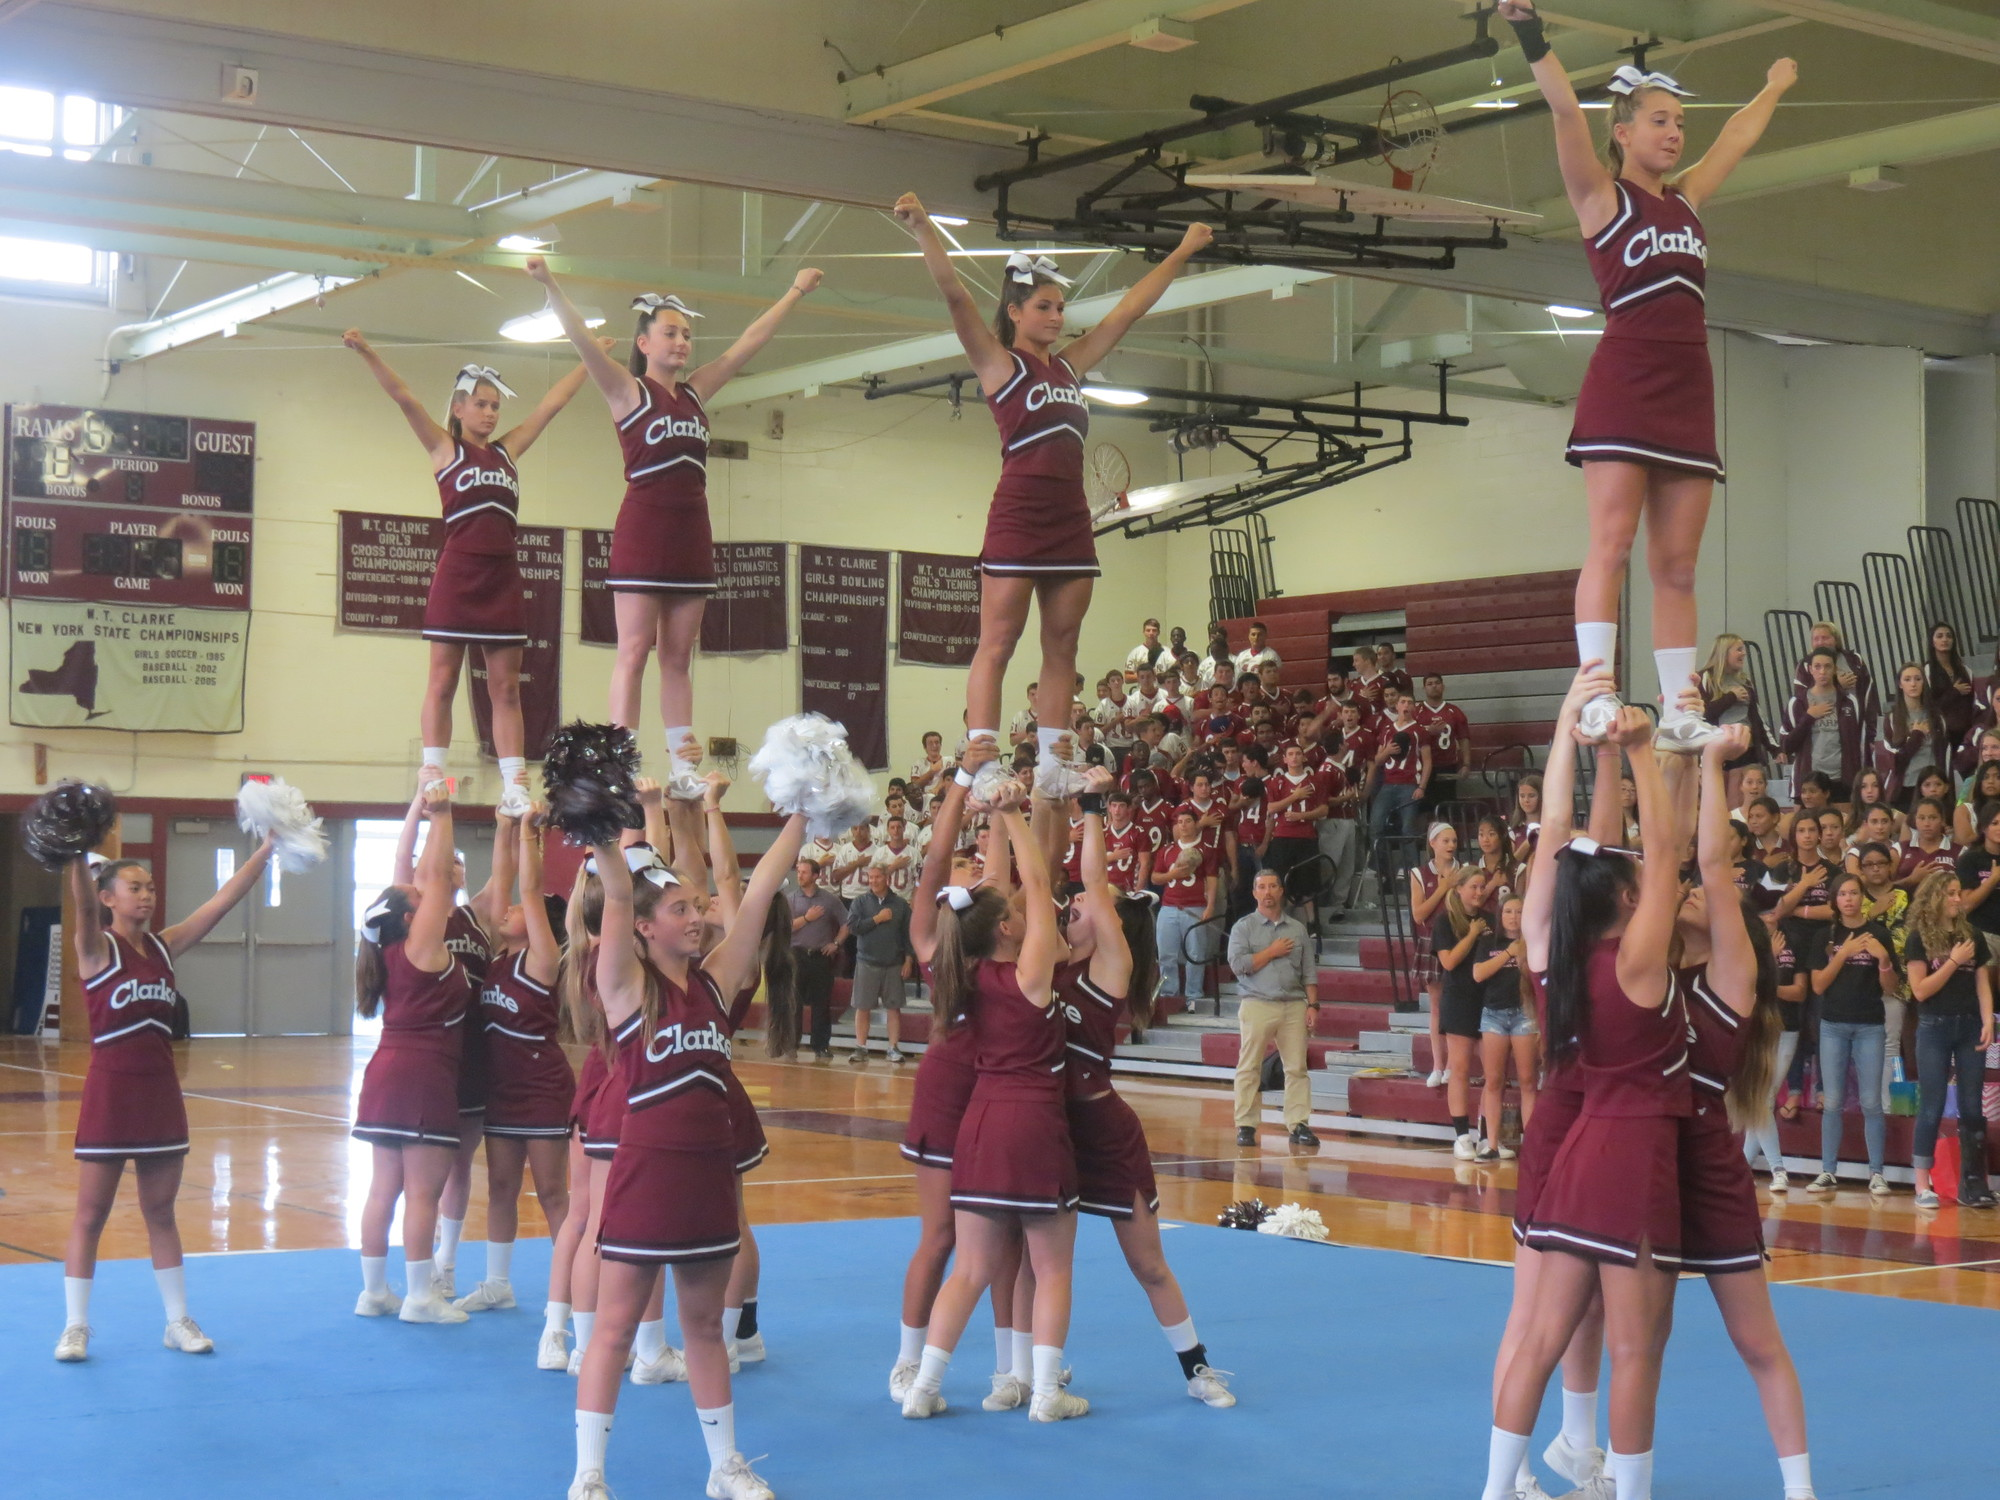 Cheerleaders energized the crowd in the school gymnasium.